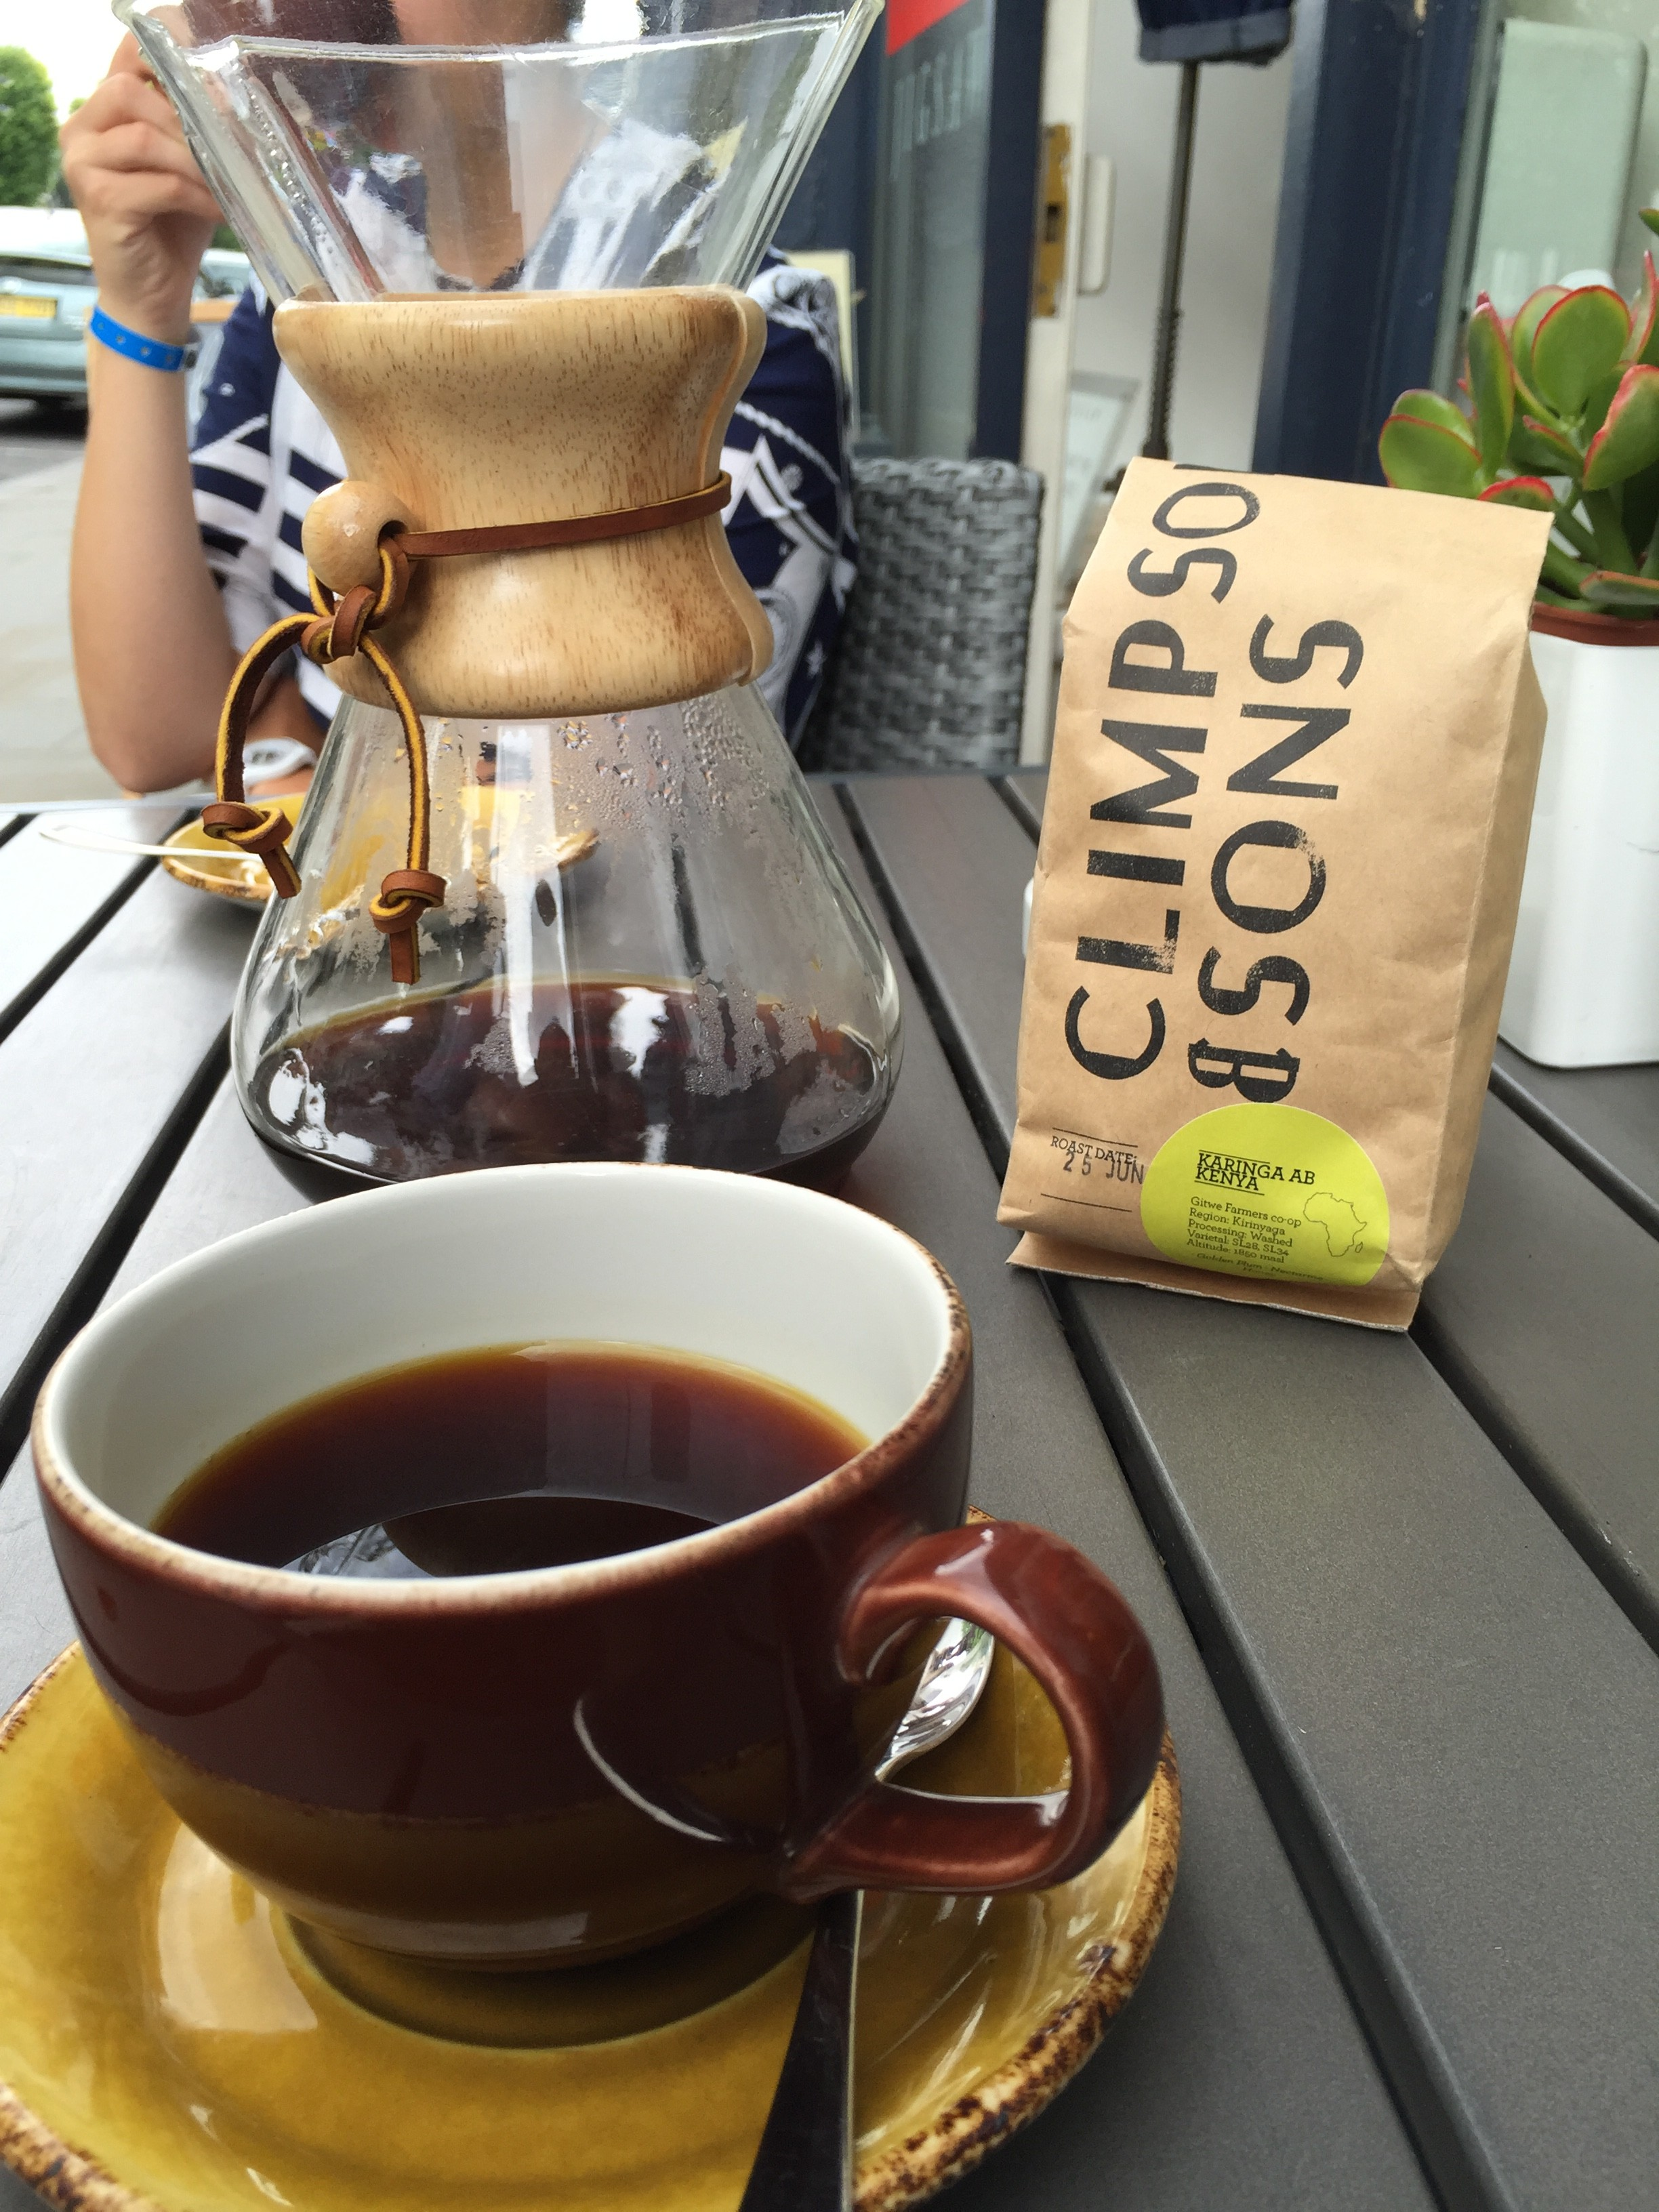 Climpsons single origin coffee